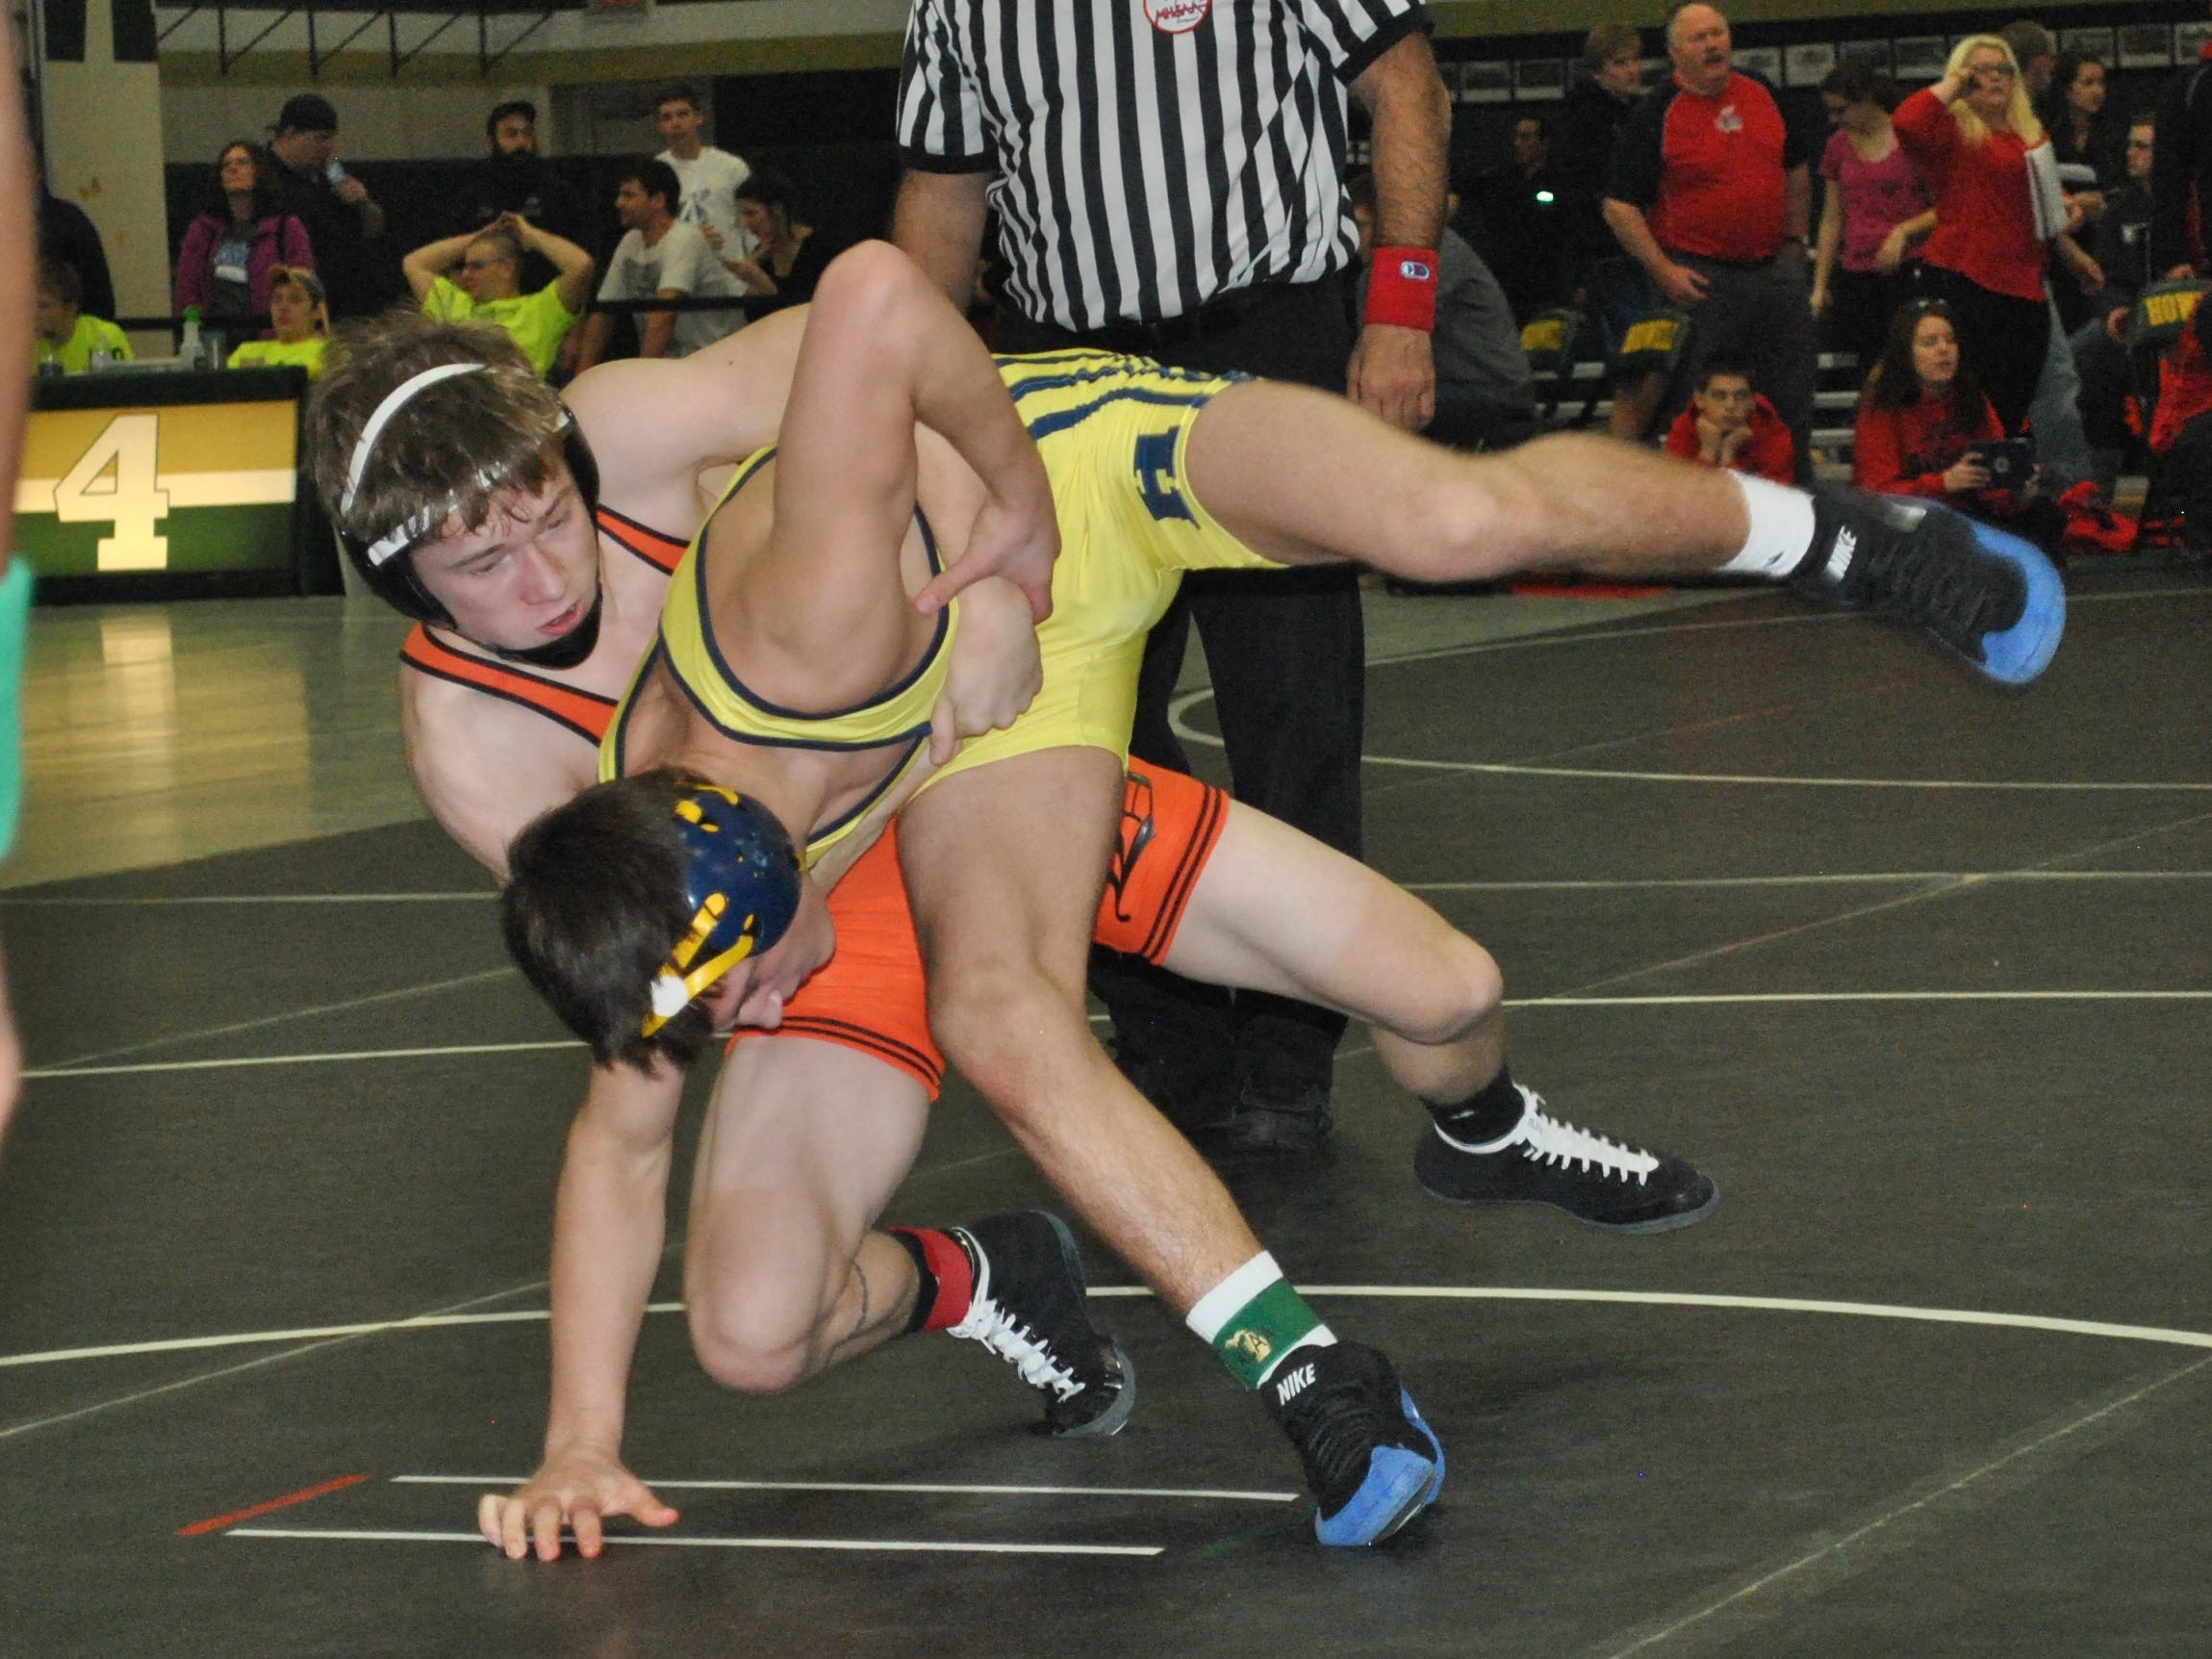 Kyle Bohnsack was on the last Brighton team to reach the state finals in 2012. He'll head back with his teammates in his senior year after beating Holt to win a regional title Wednesday.